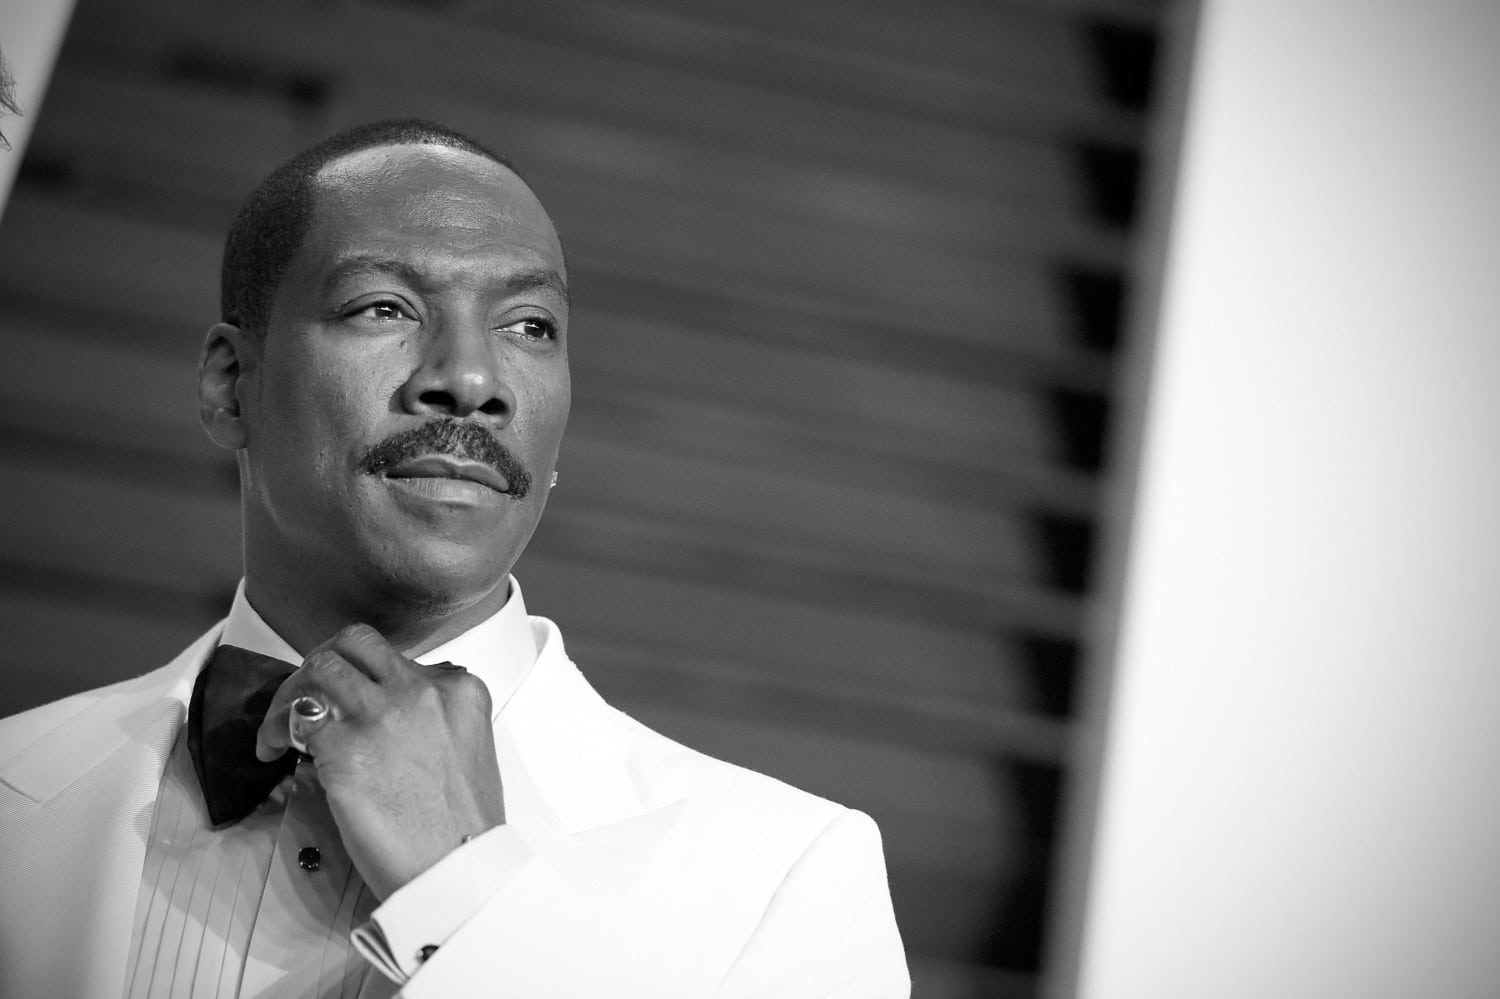 Eddie Murphy Is About To Become A Dad For The 10th Time